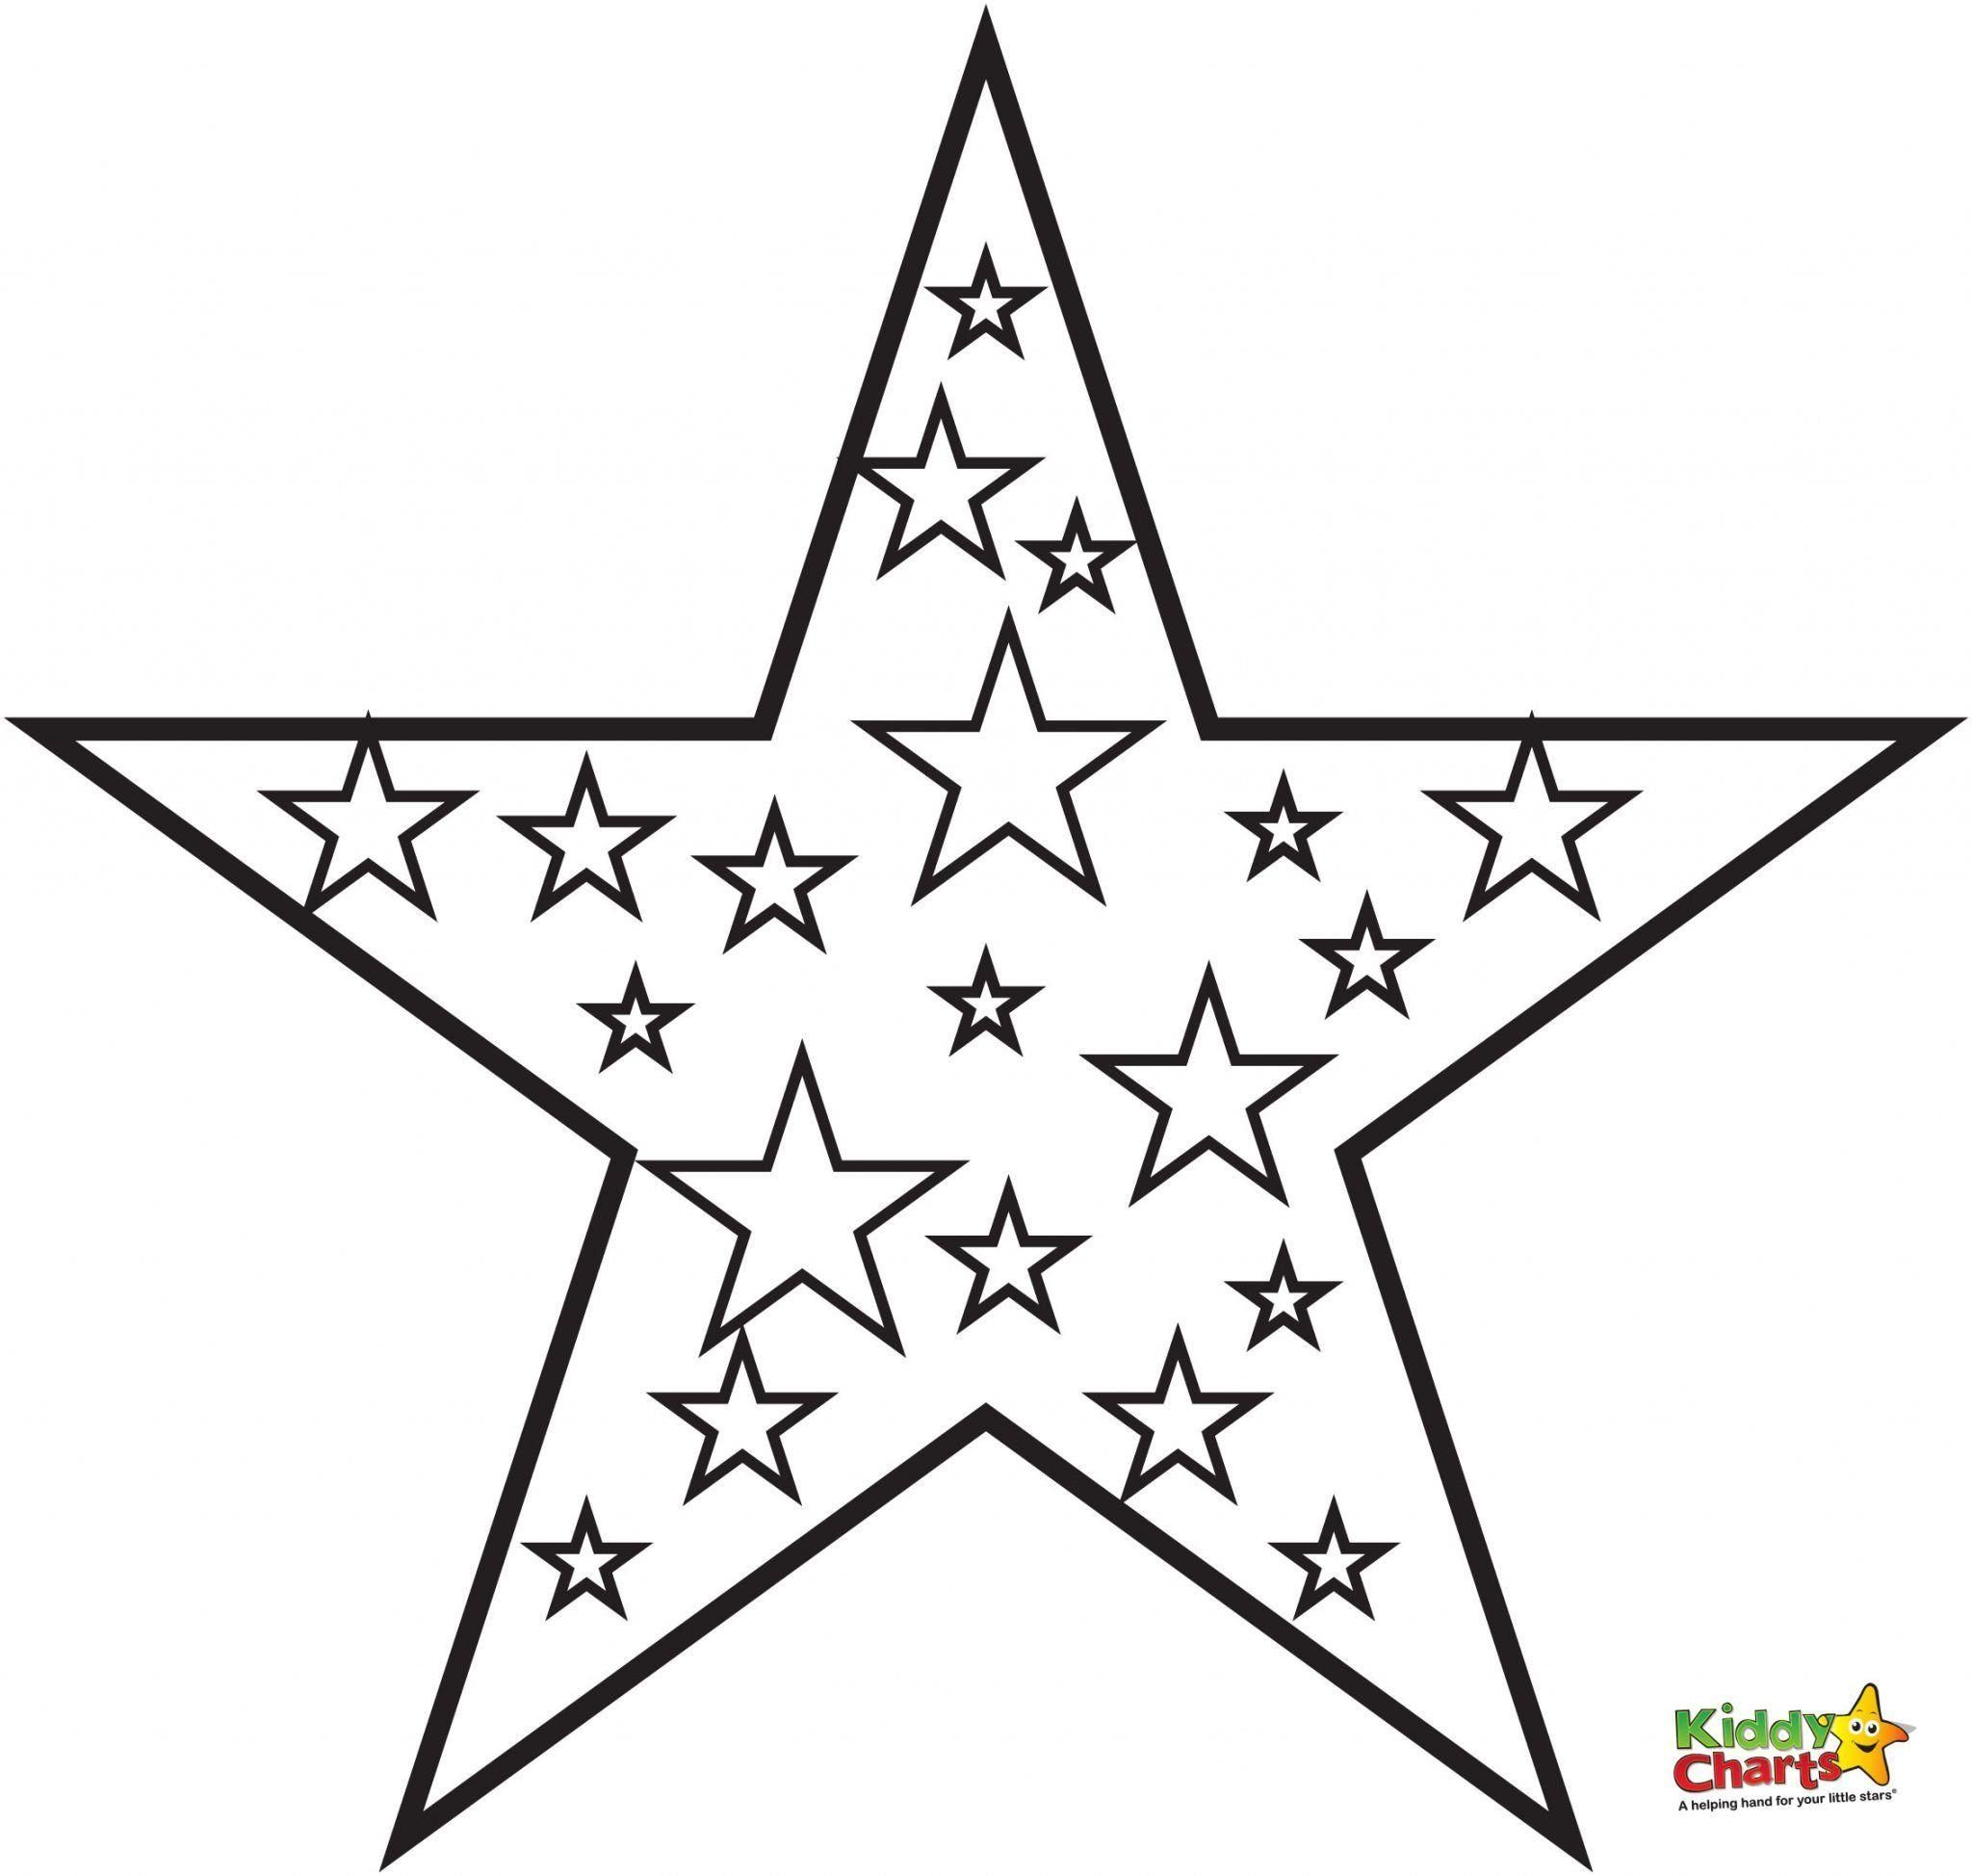 10 Coloring Page Stars Shape Coloring Pages Star Coloring Pages Printable Coloring Pages